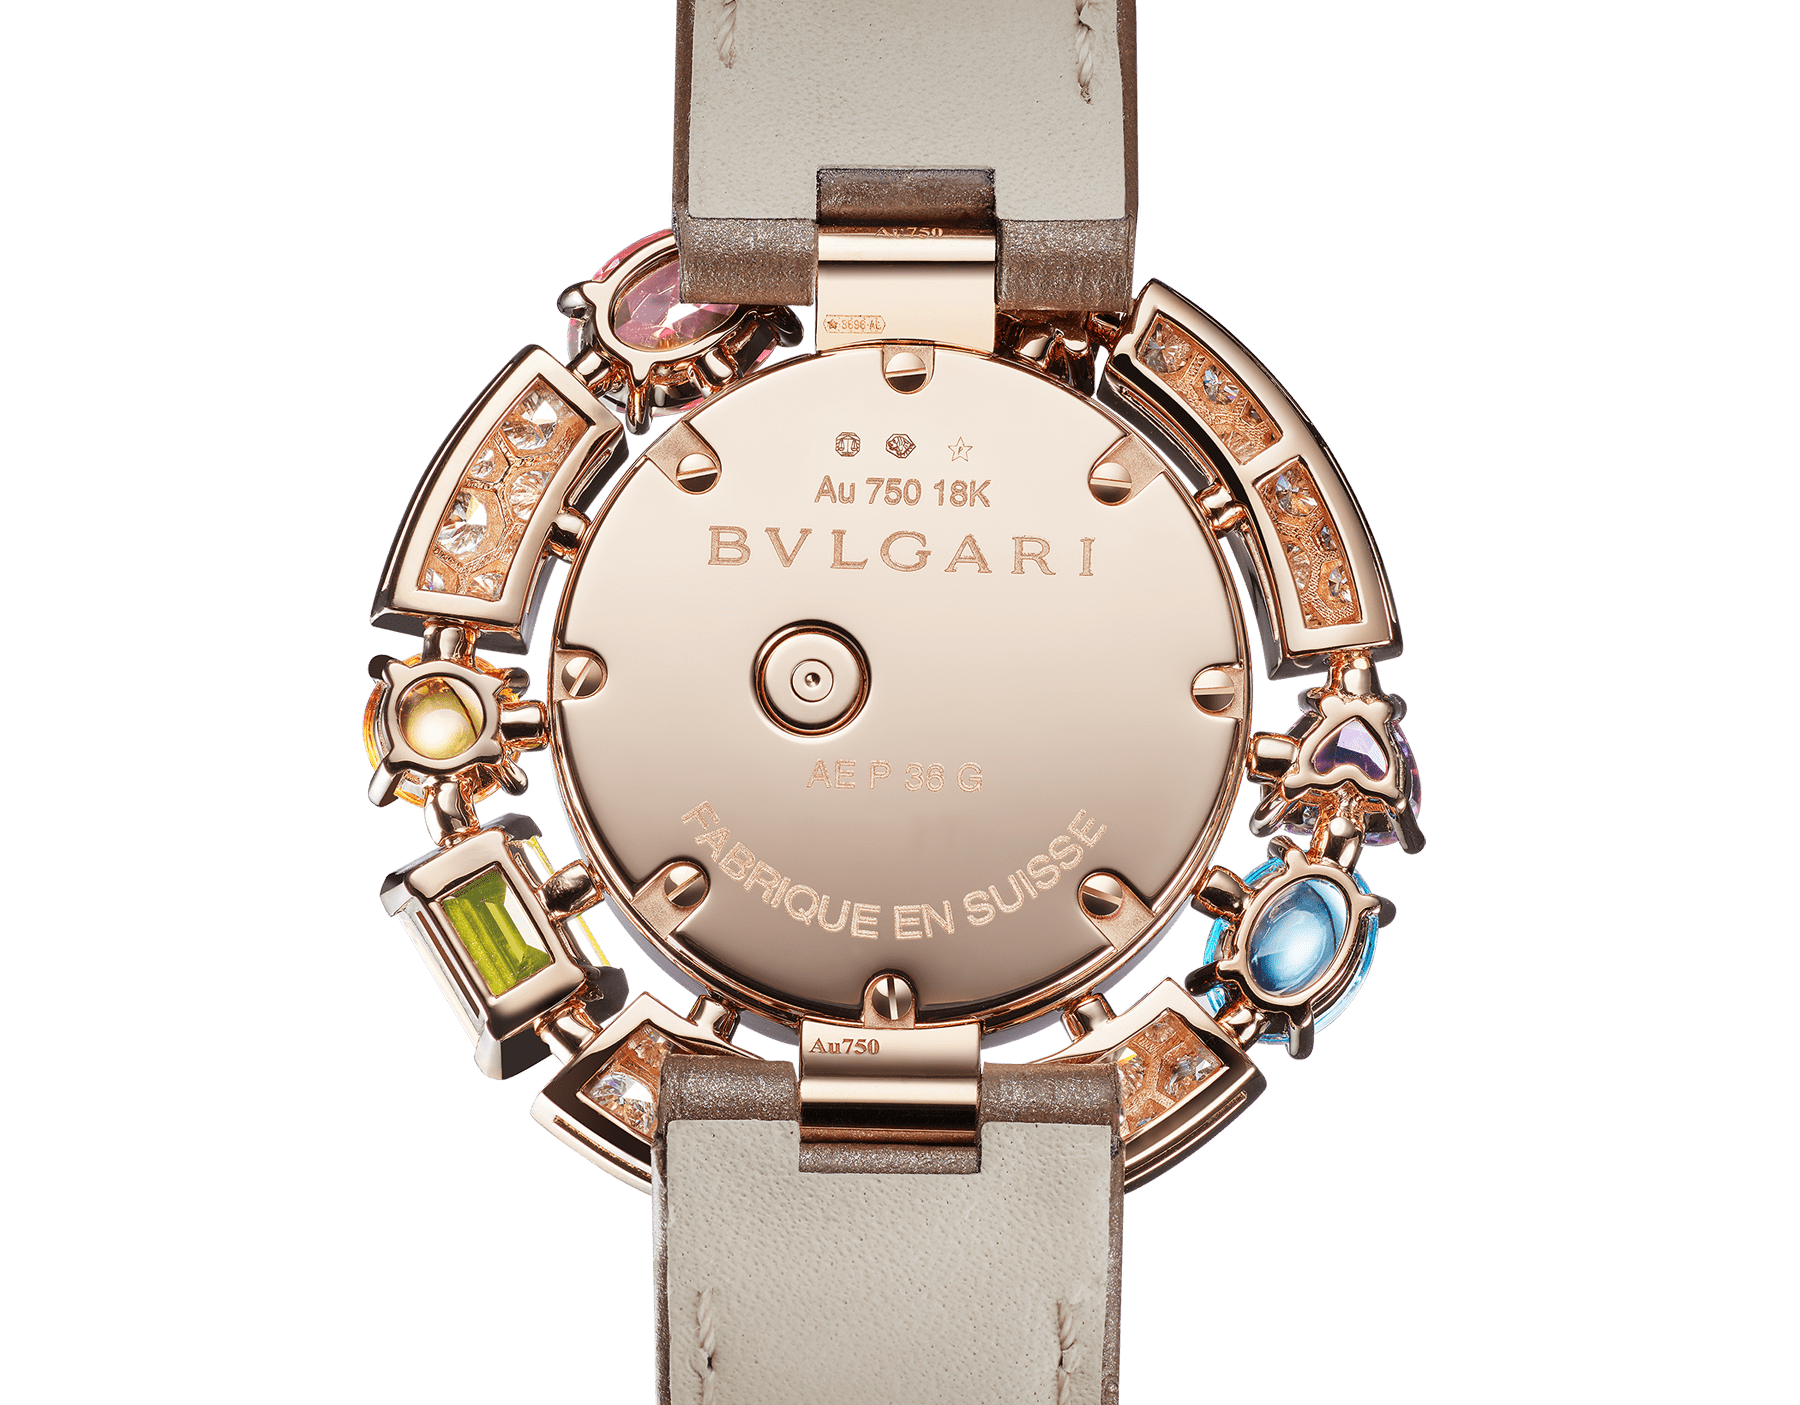 Allegra High Jewellery watch with 18 kt rose gold case set with brilliant-cut diamonds, two citrines, two amethysts, a peridot, two blue topazes and a rhodolite, mother-of-pearl dial, diamond indexes and taupe shining alligator bracelet. Water resistant up to 30 metres 103493 image 4